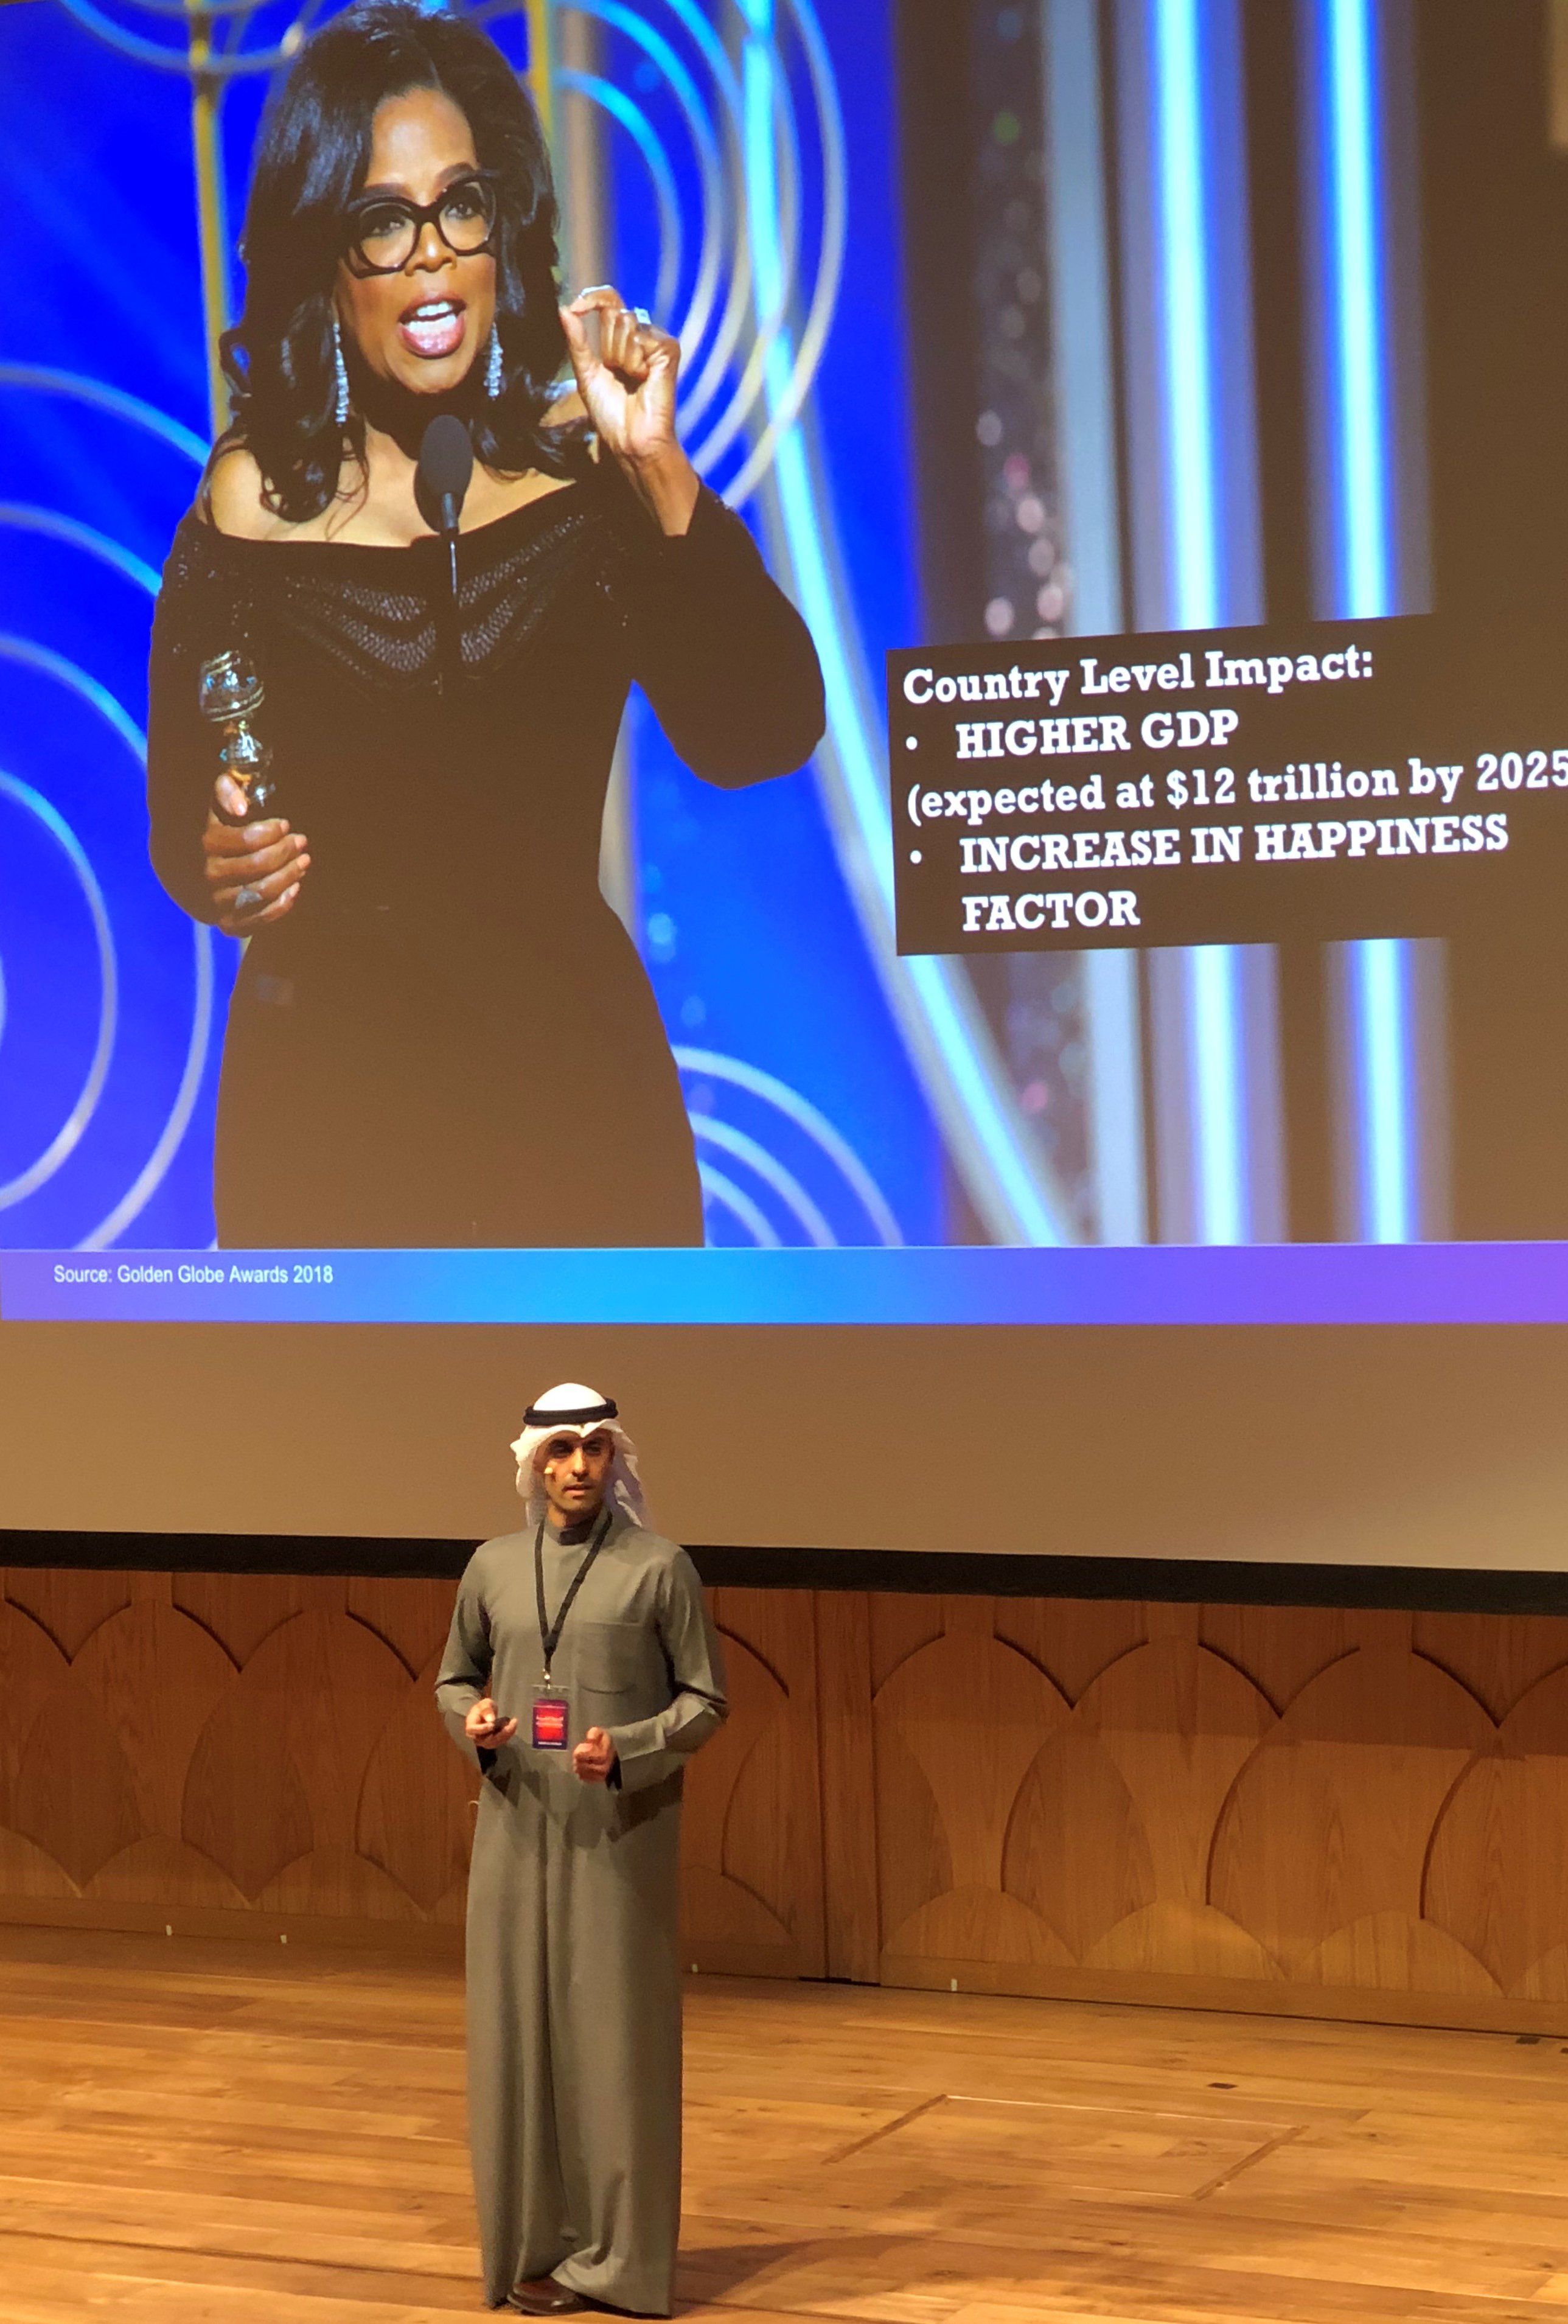 Bader Al-Kharafi: Enabling a culture of innovation is a